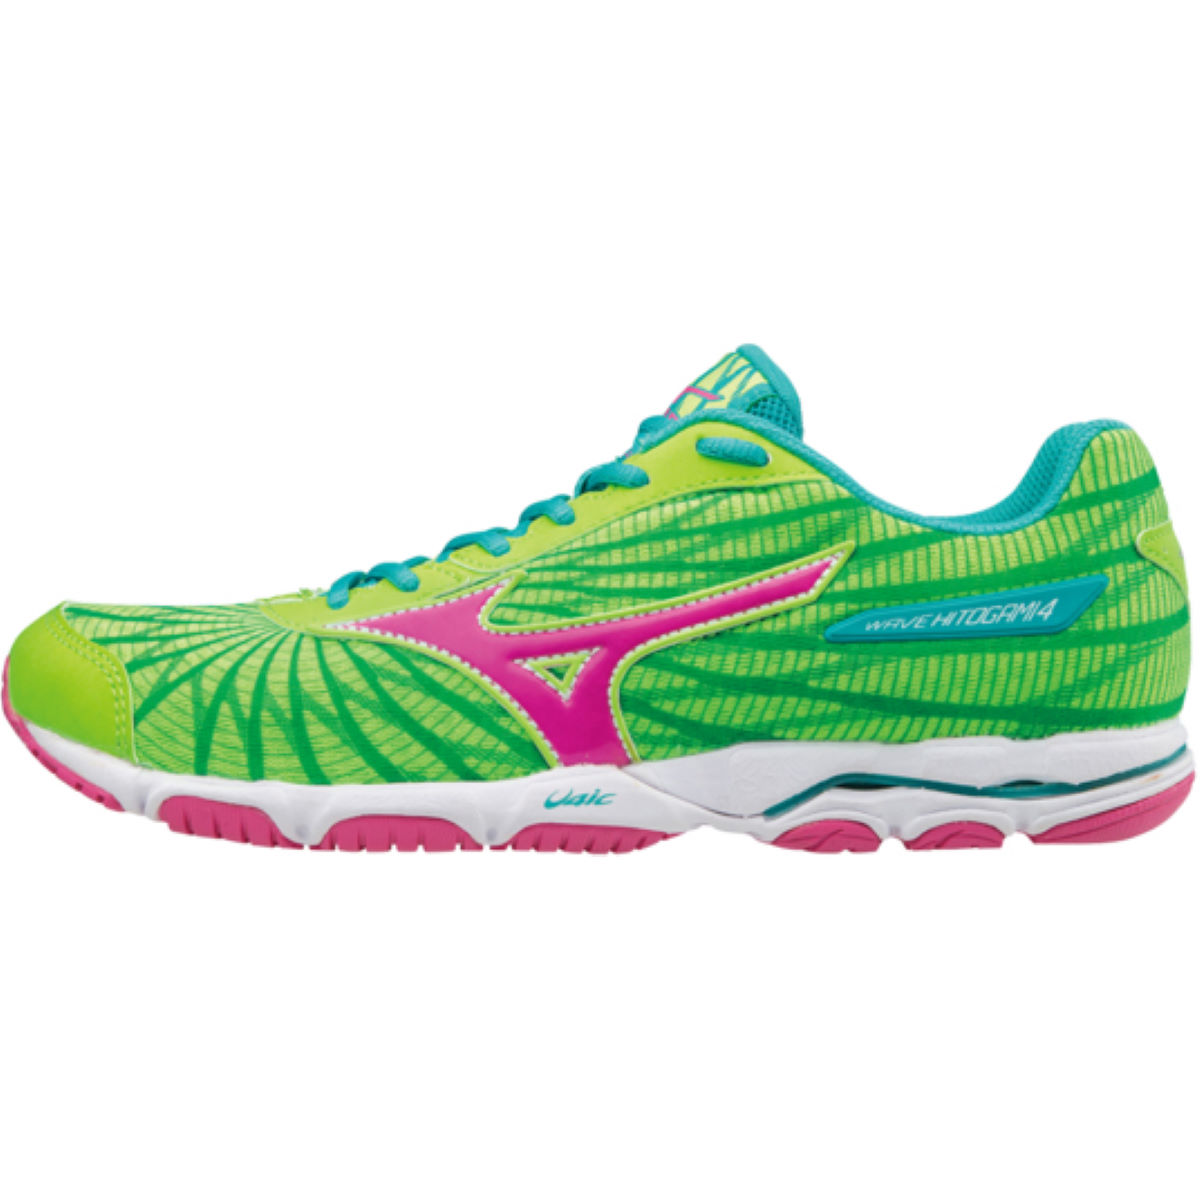 Mizuno Wave Hitogami 4 Women's Shoes (PV17) - Competition Shoes